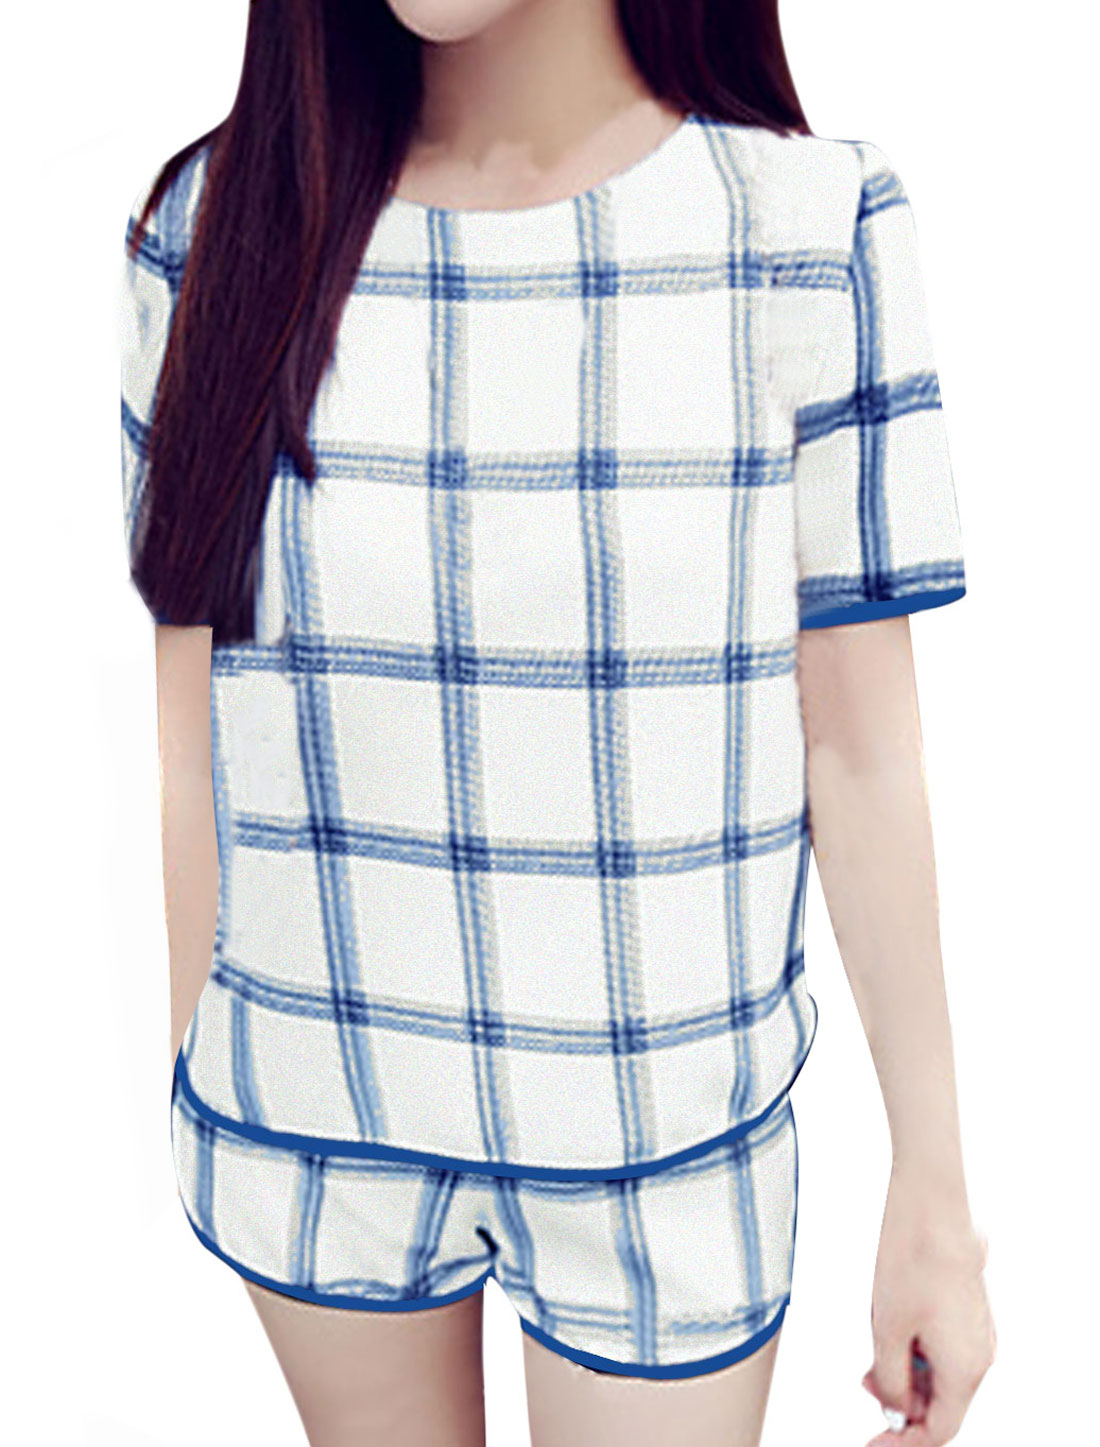 Lady Short Sleeve Plaids T-Shirt w Elastic Waist Shorts White Blue XS